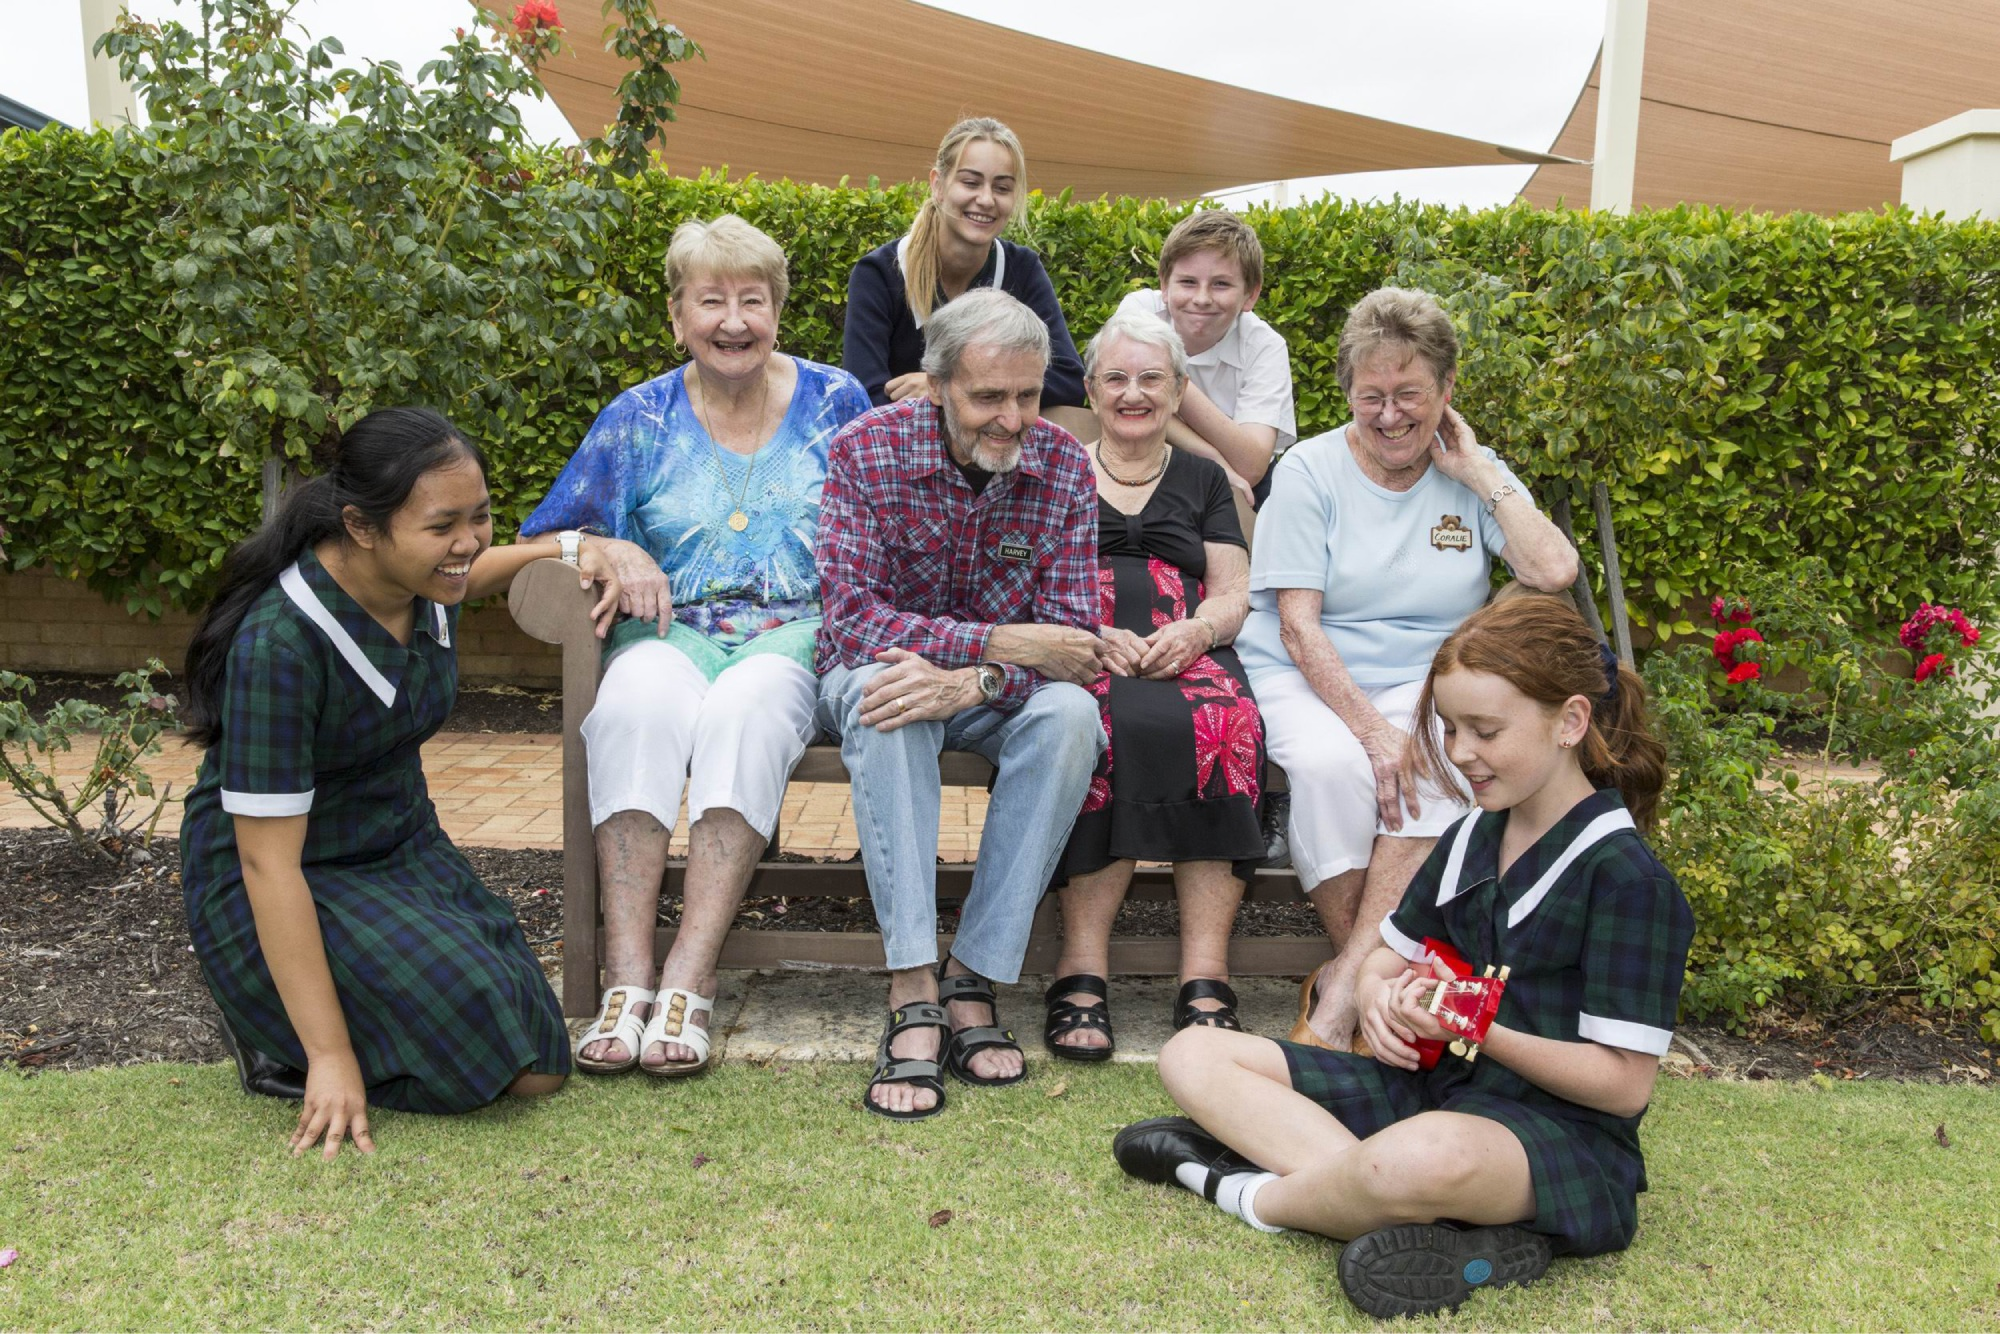 Swan Valley Anglican Community School students Celine Cee, Harley Gardiner, Mark Blay and Jasmine Shepperd with The Pines residents Careen Mitchell, Harvey Bates, Marjorie Lyon and Coralie Apps.